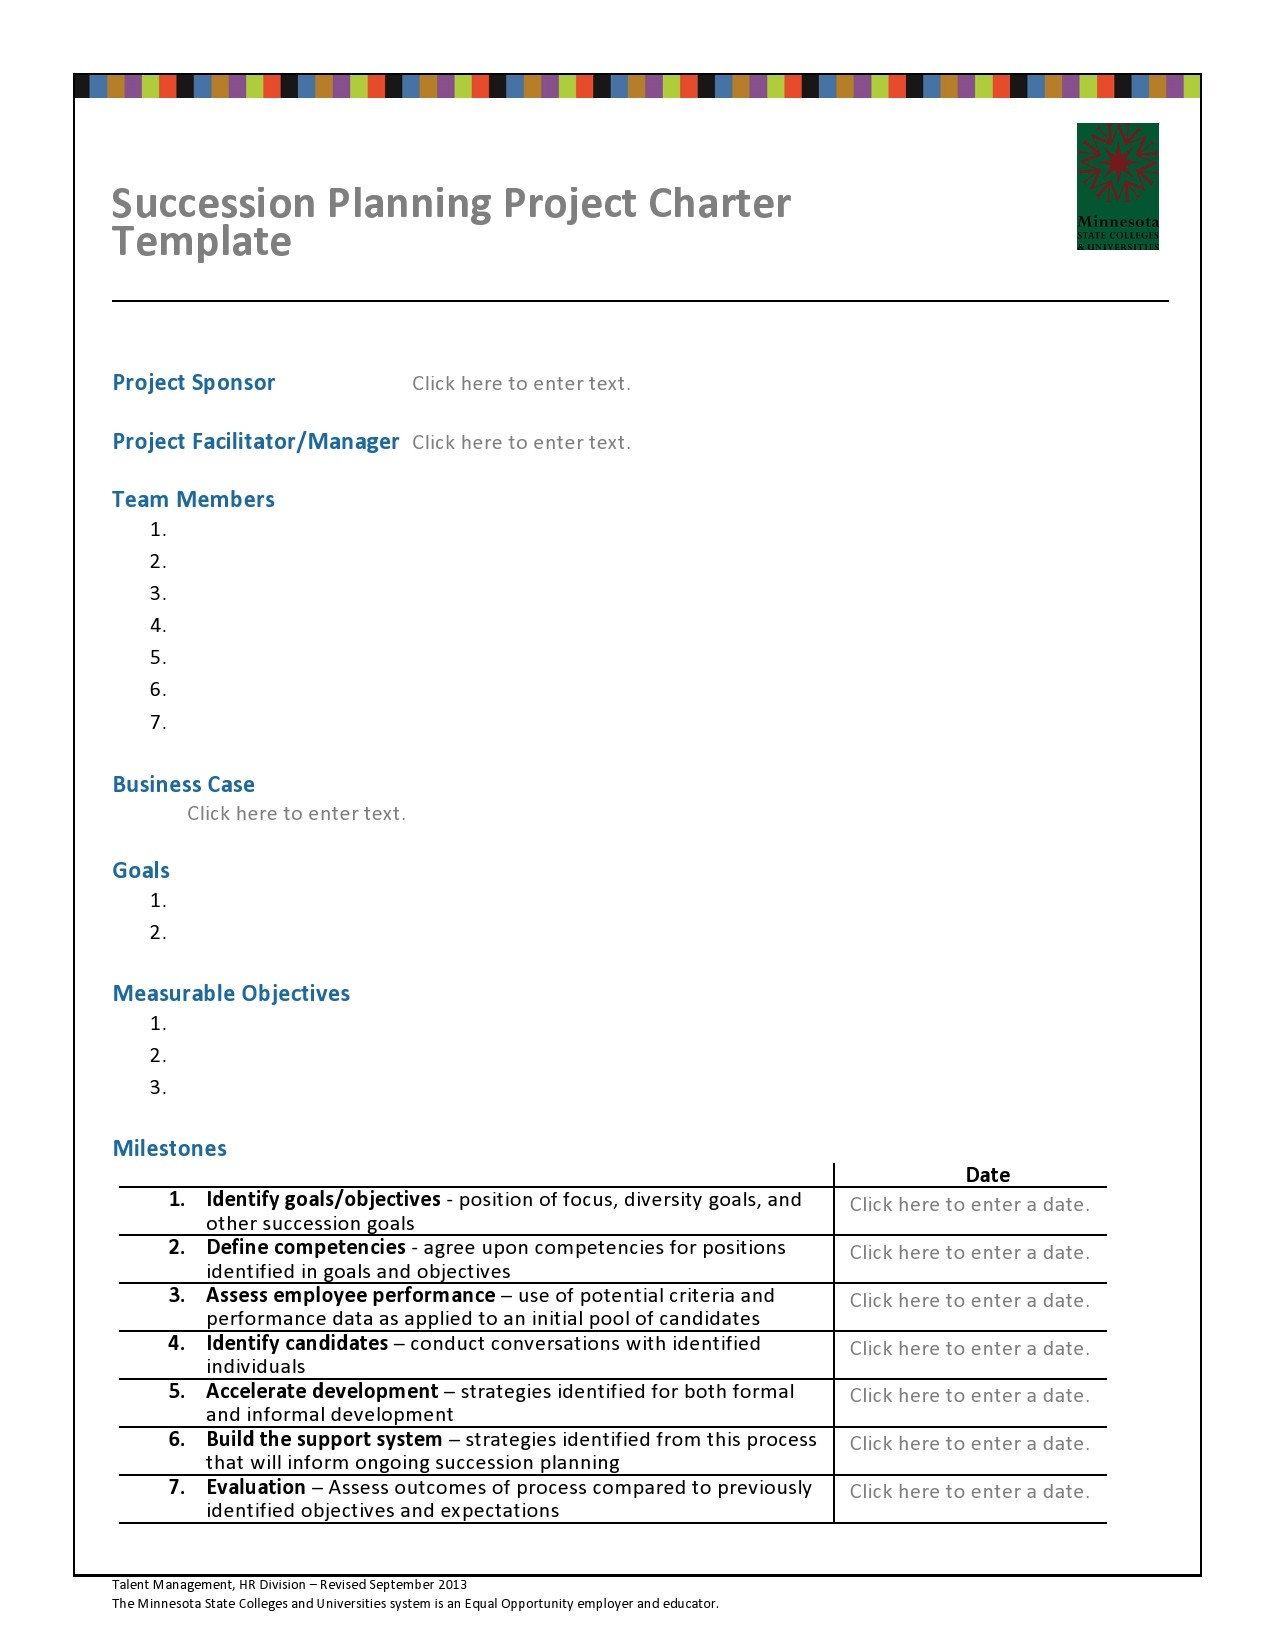 Free succession planning template 12